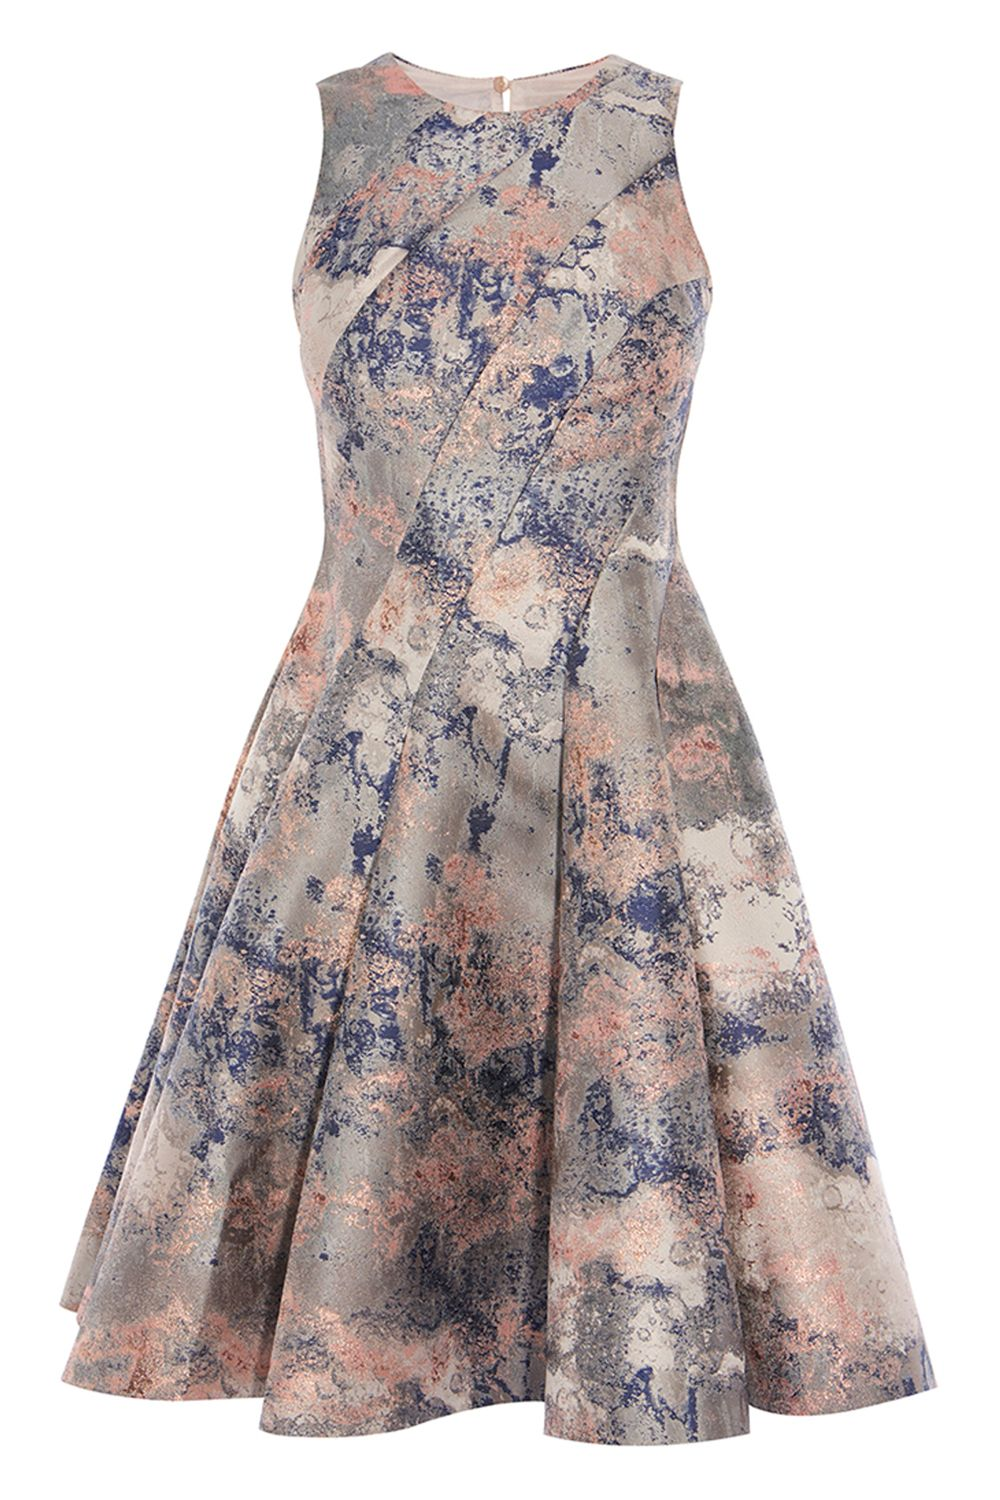 Coast Blair Marble Jacquard Dress, Multi-Coloured